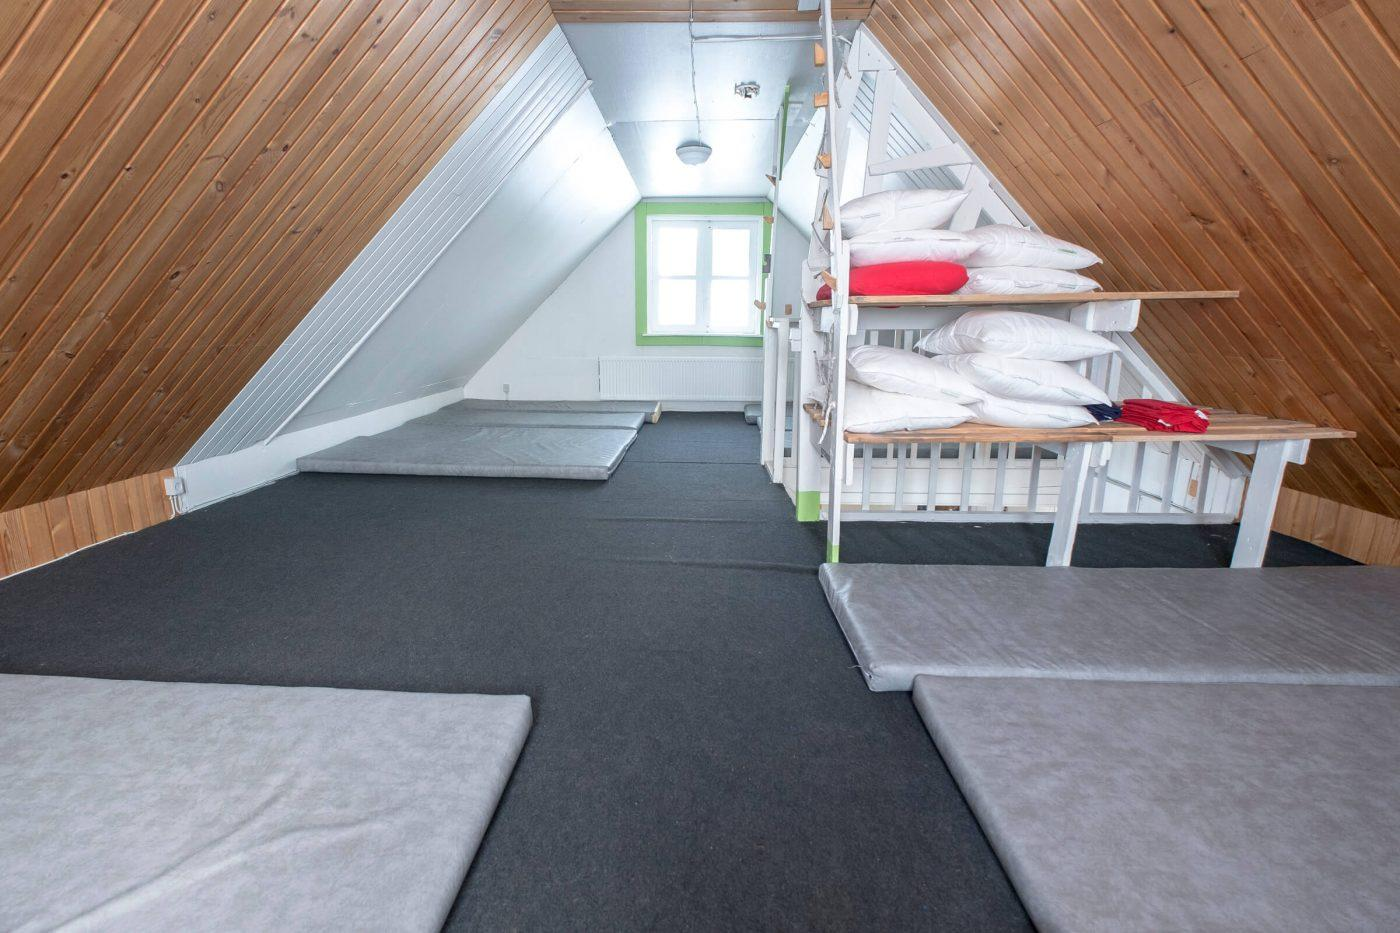 The top floor is a sleeping loft with a mountain-hut style sleeping bag accommodation in a dormitory for up to 15 persons. Photo by Icelandic Mountain Guides